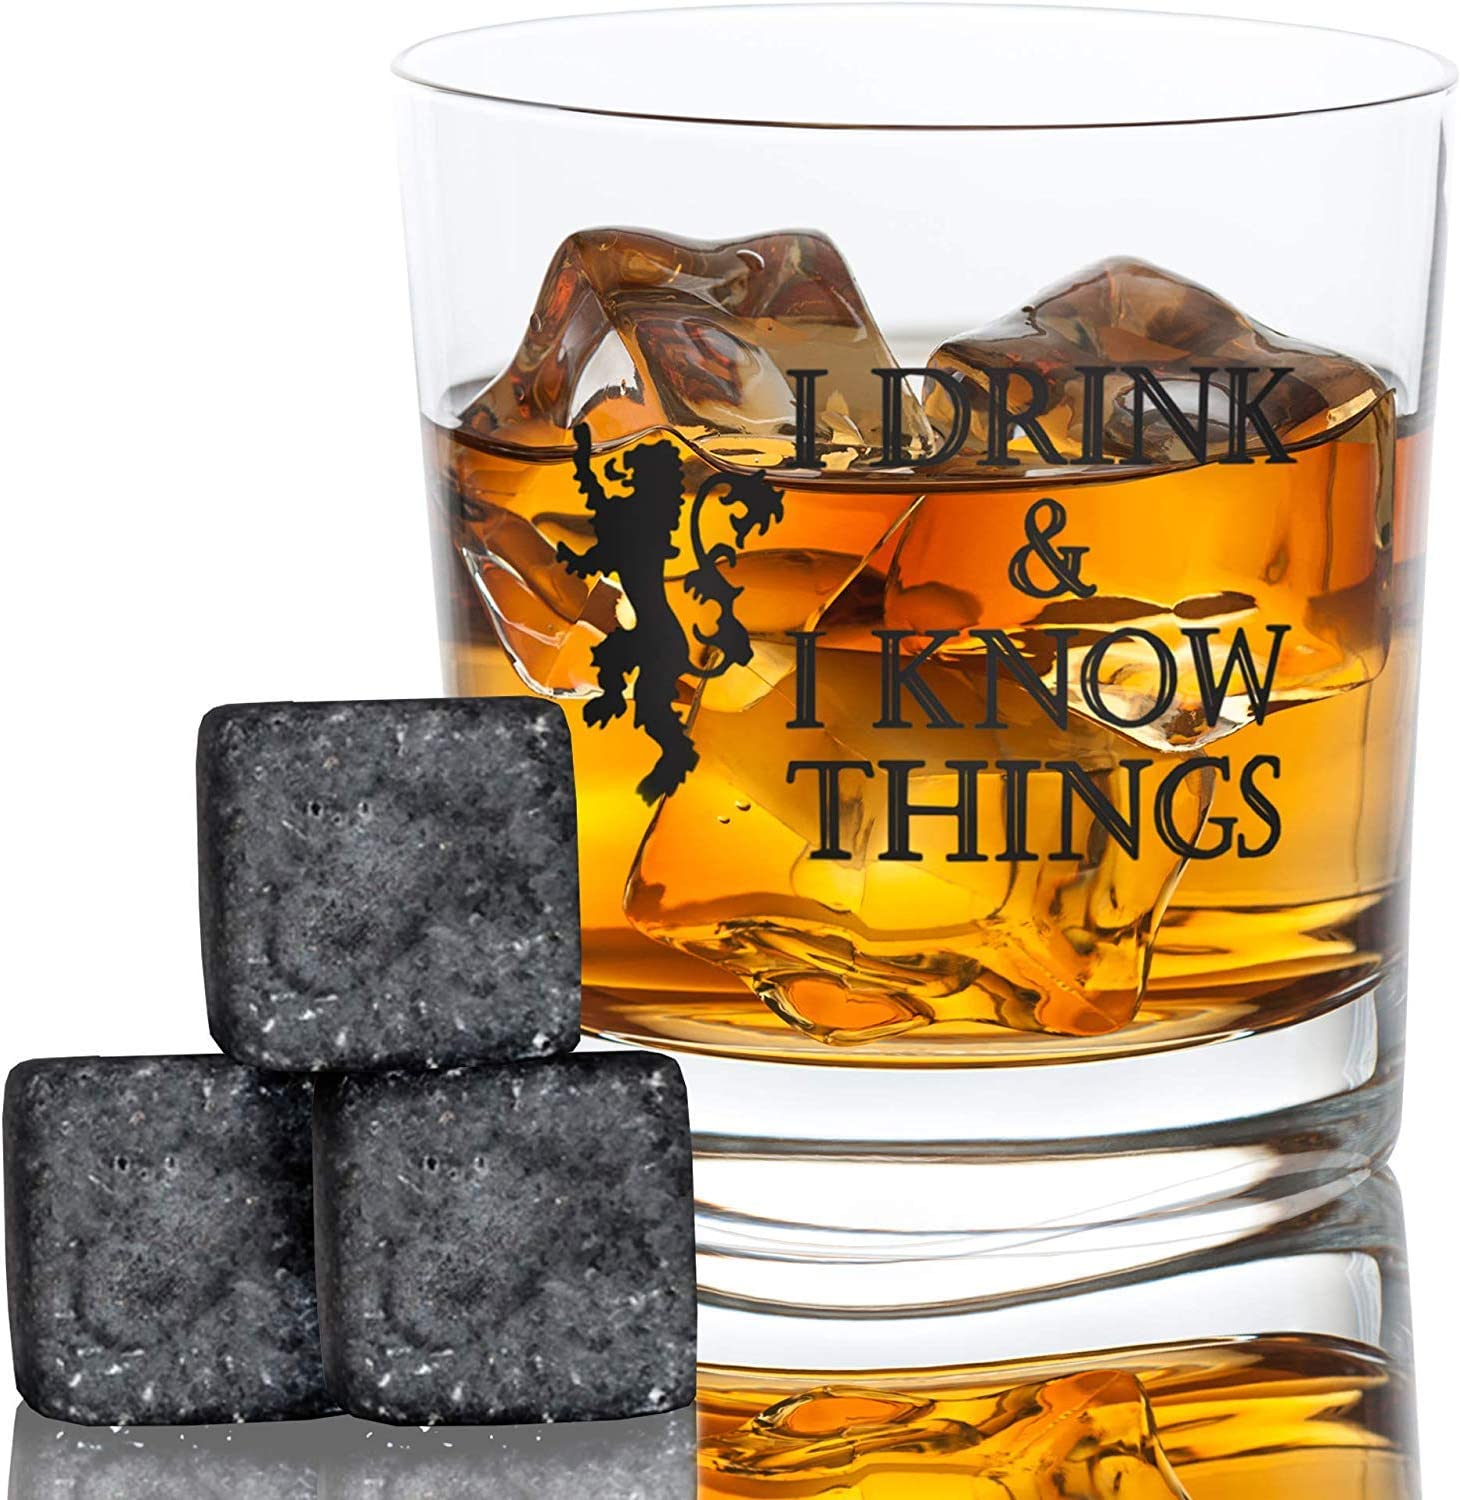 This is an image of a whiskey glass filled with whiskey and three chilling granite stones beside it.